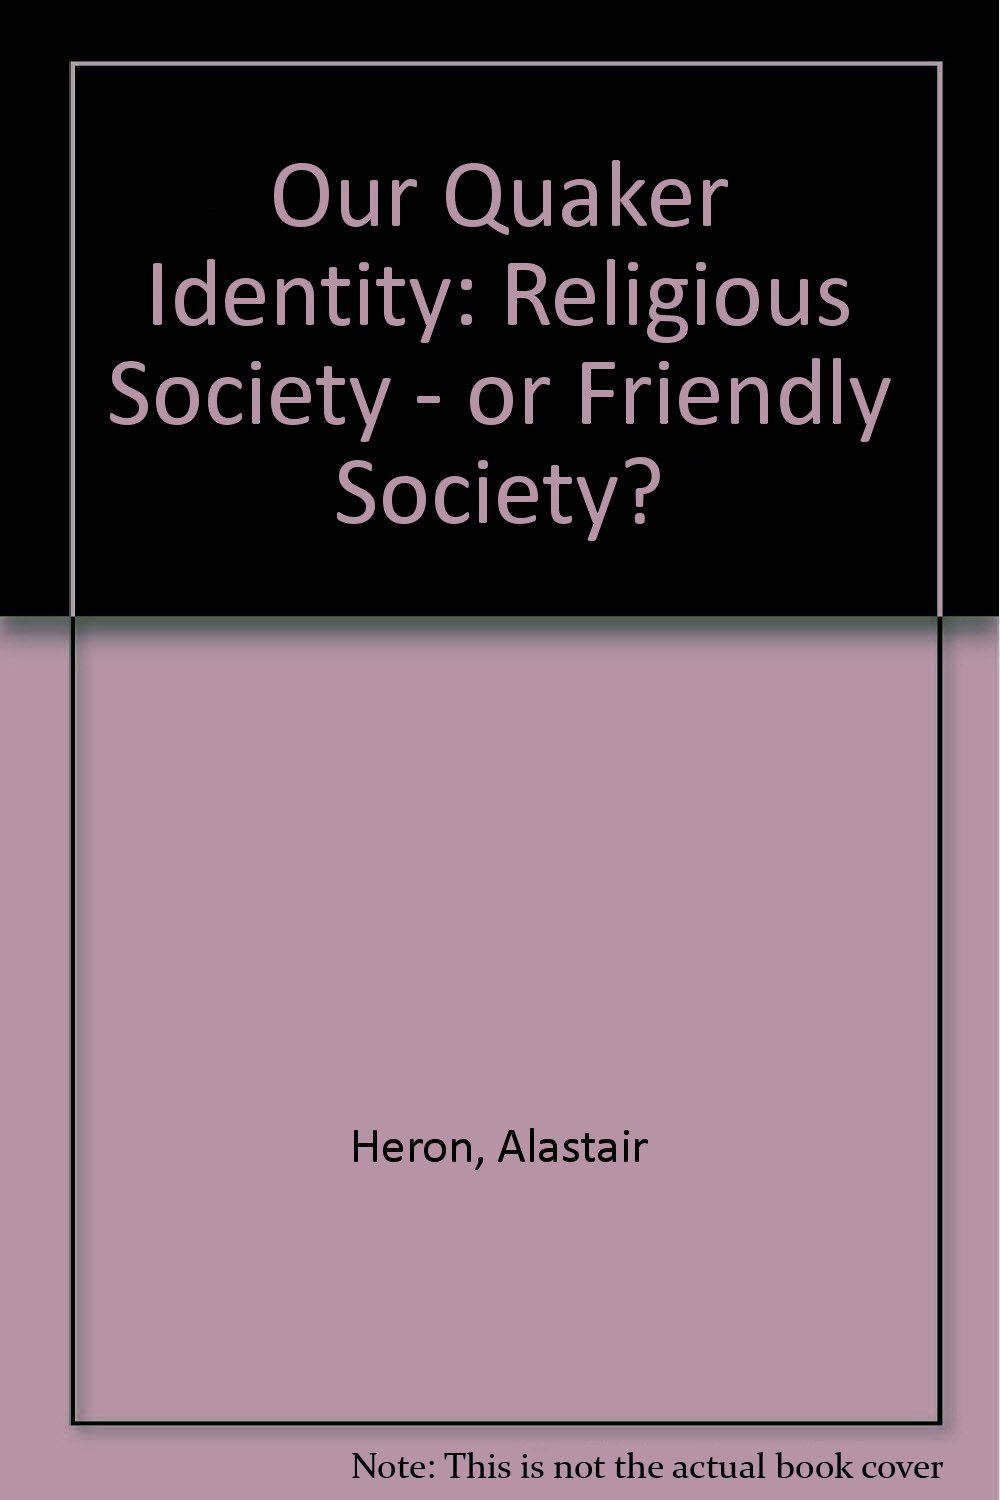 Our Quaker Identity: Religious Society - or Friendly Society?